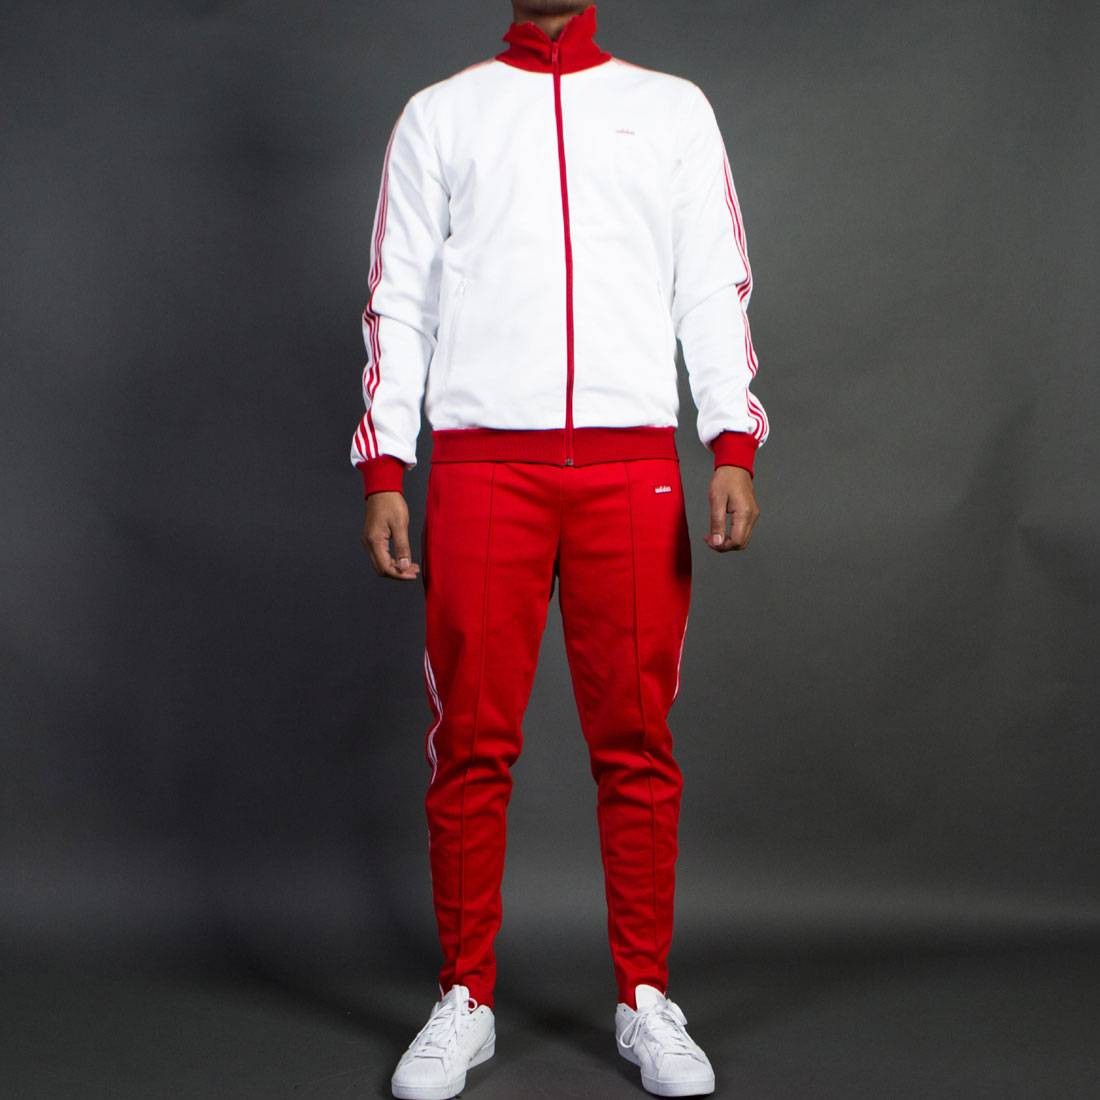 587bc60c79d Adidas Men The Bechenbauer Tracksuit - Made in Germany white